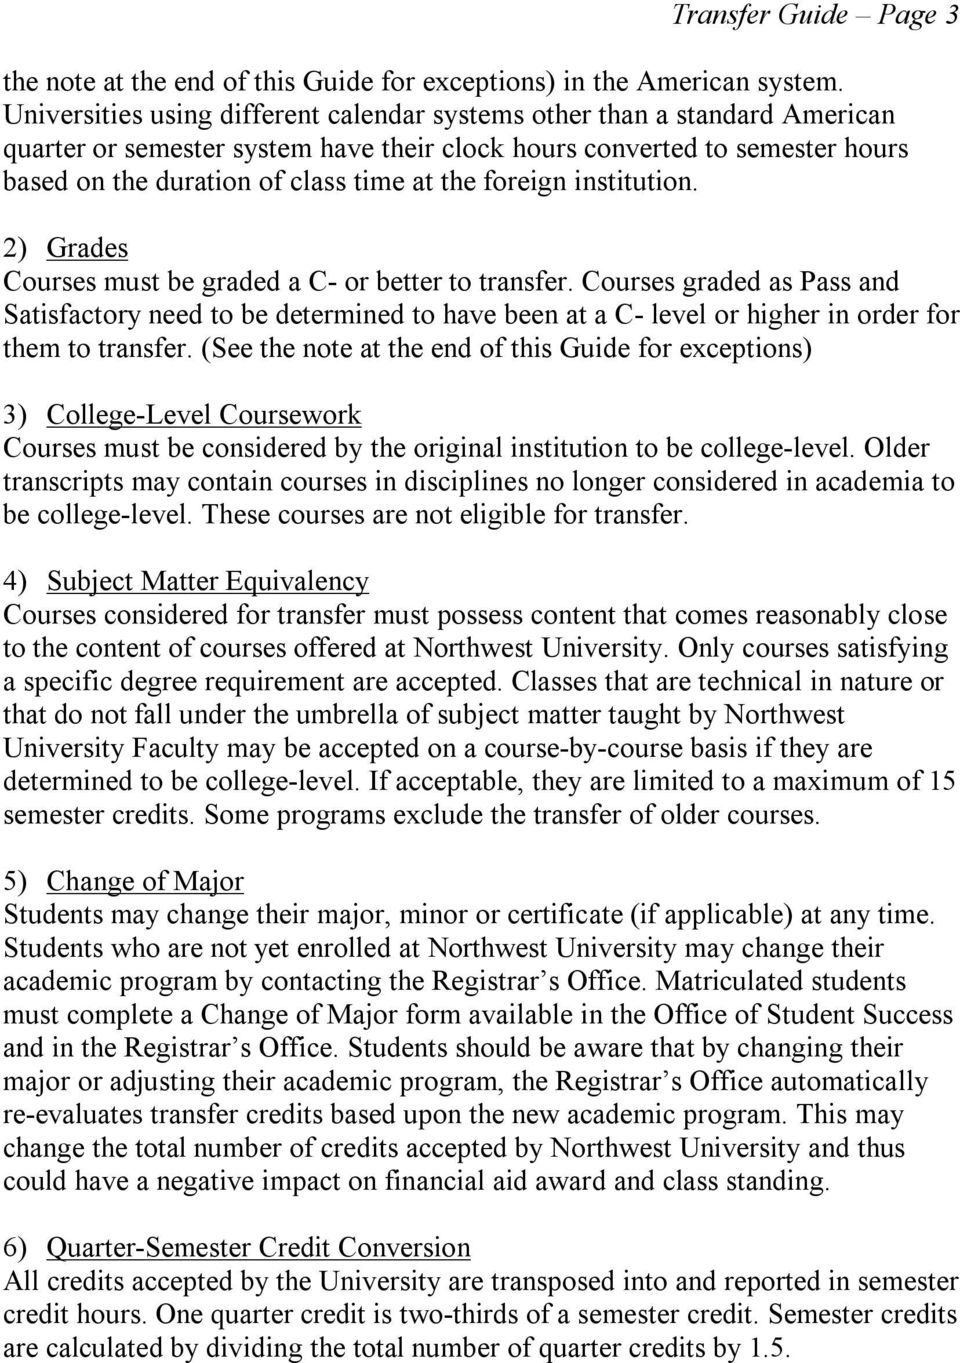 foreign institution. 2) Grades Courses must be graded a C- or better to transfer.